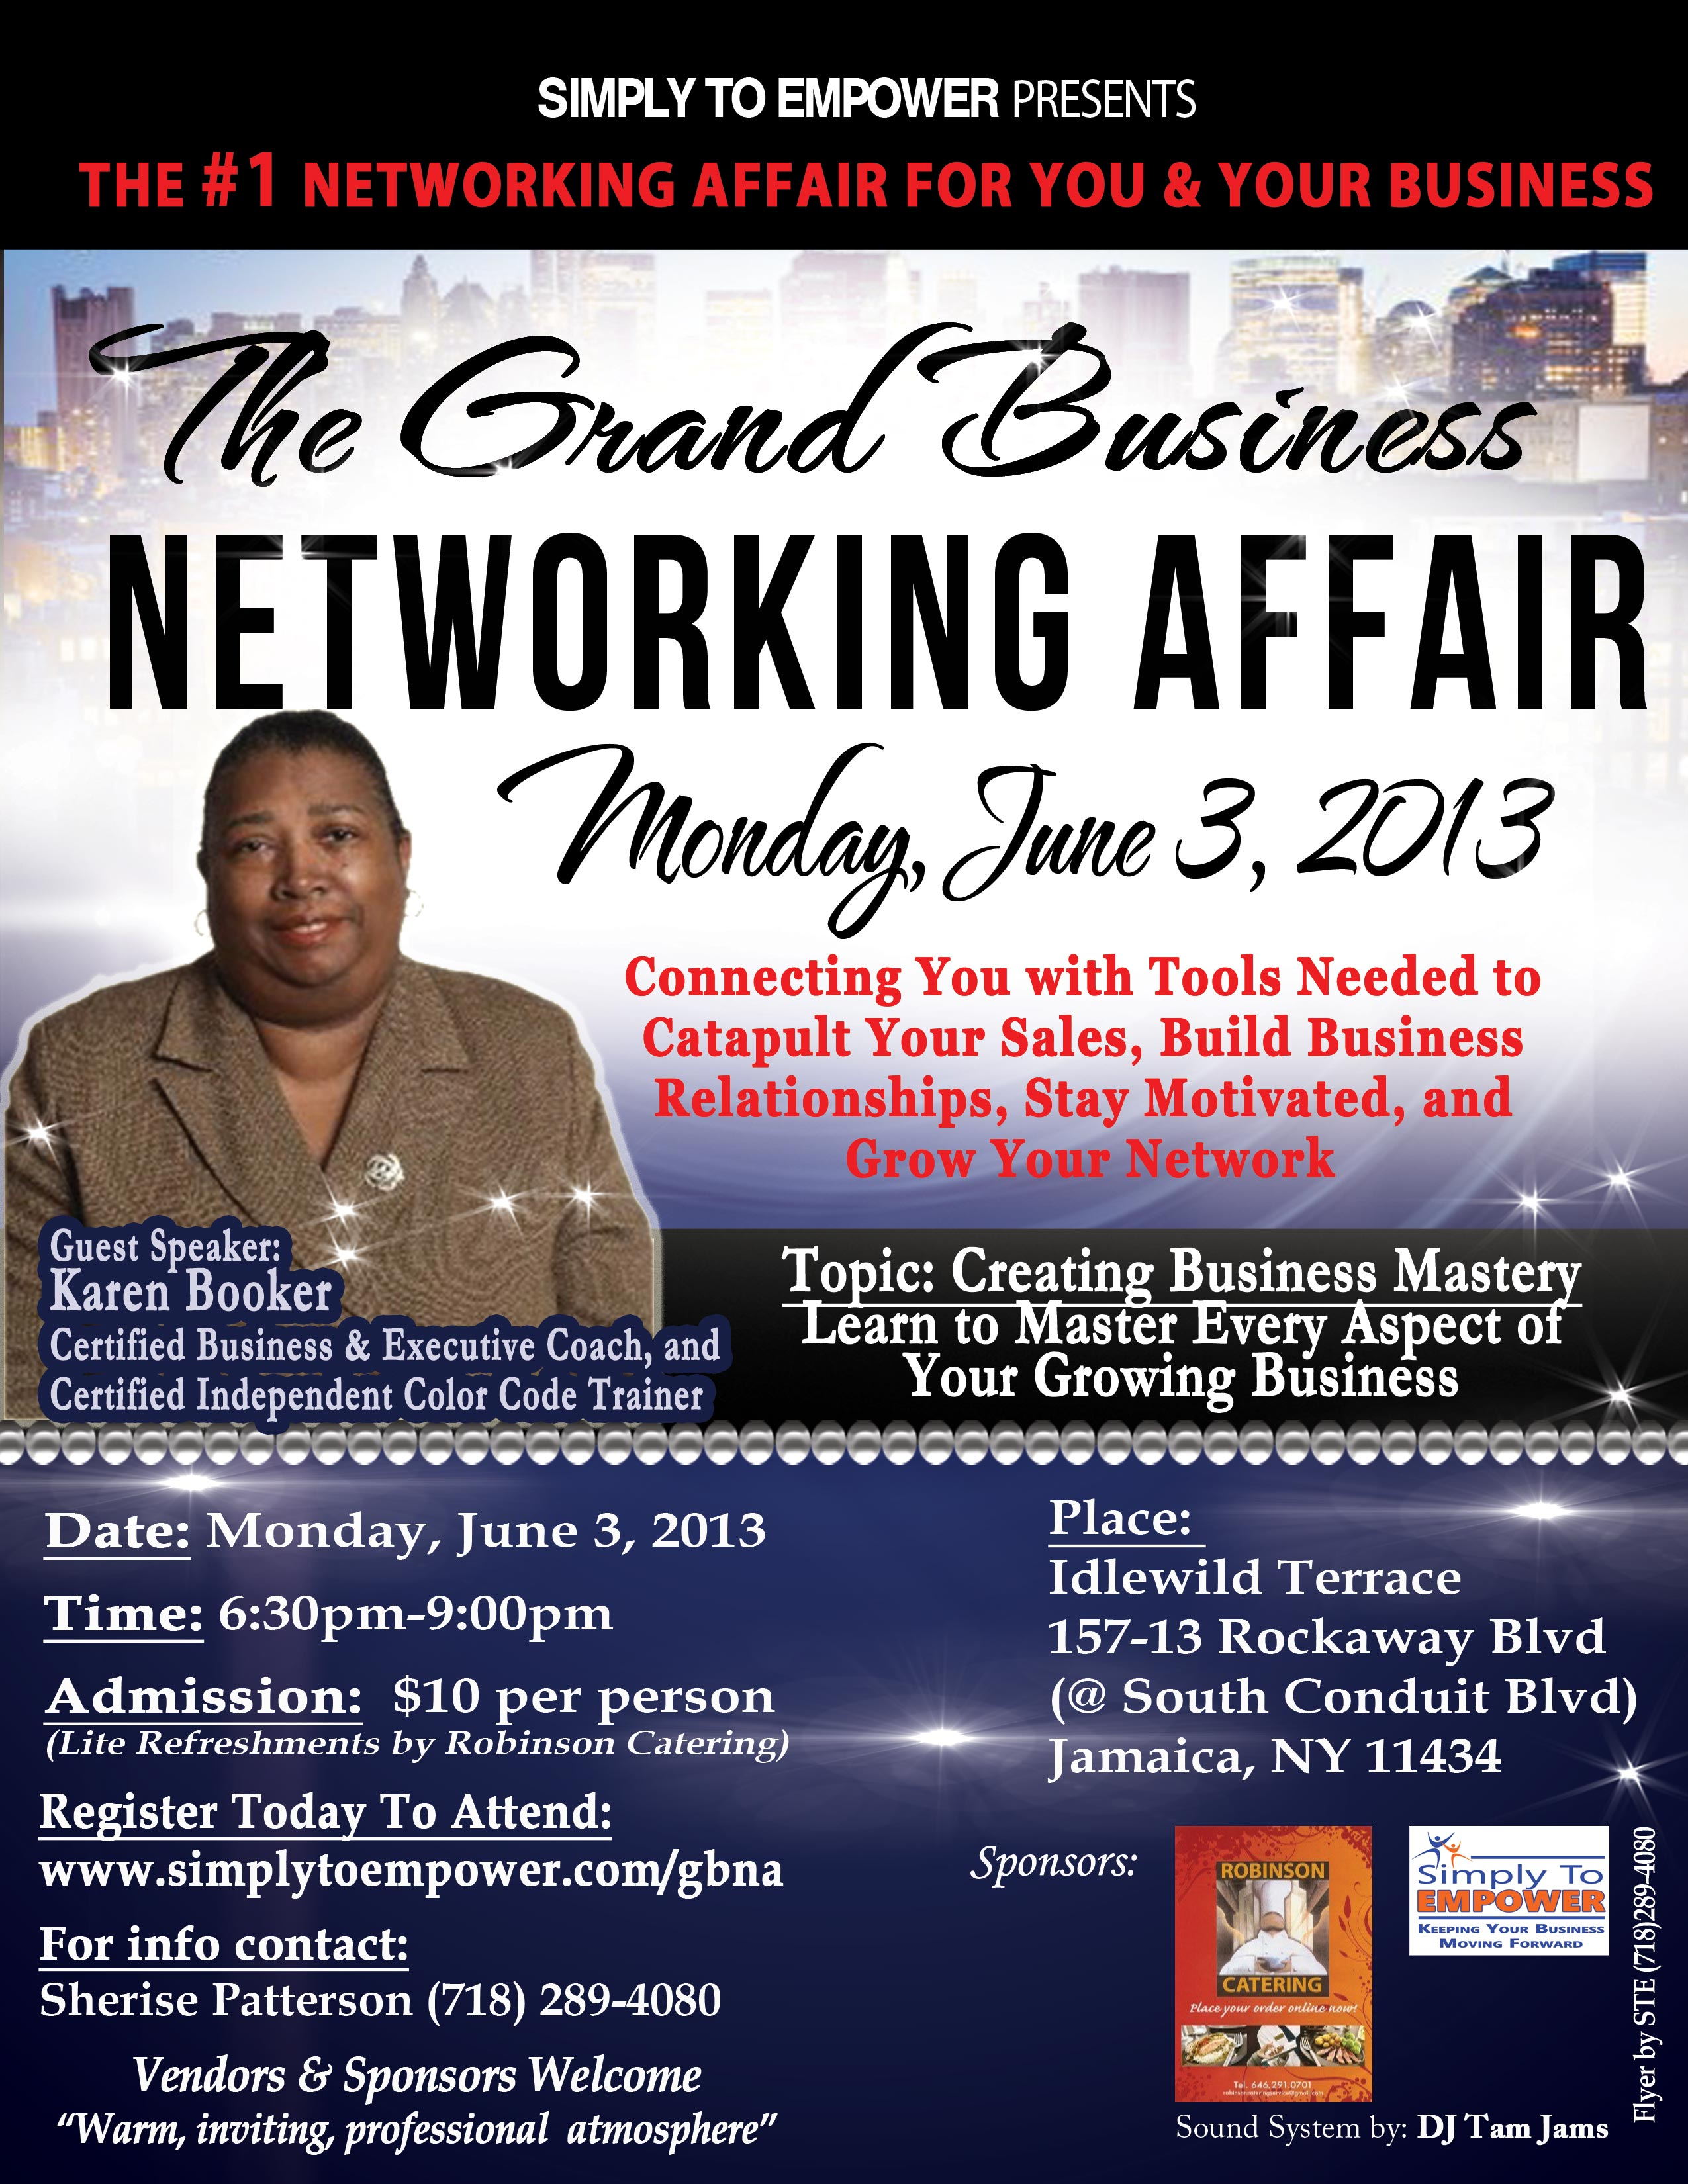 GBNA Monday, June 3, 2013